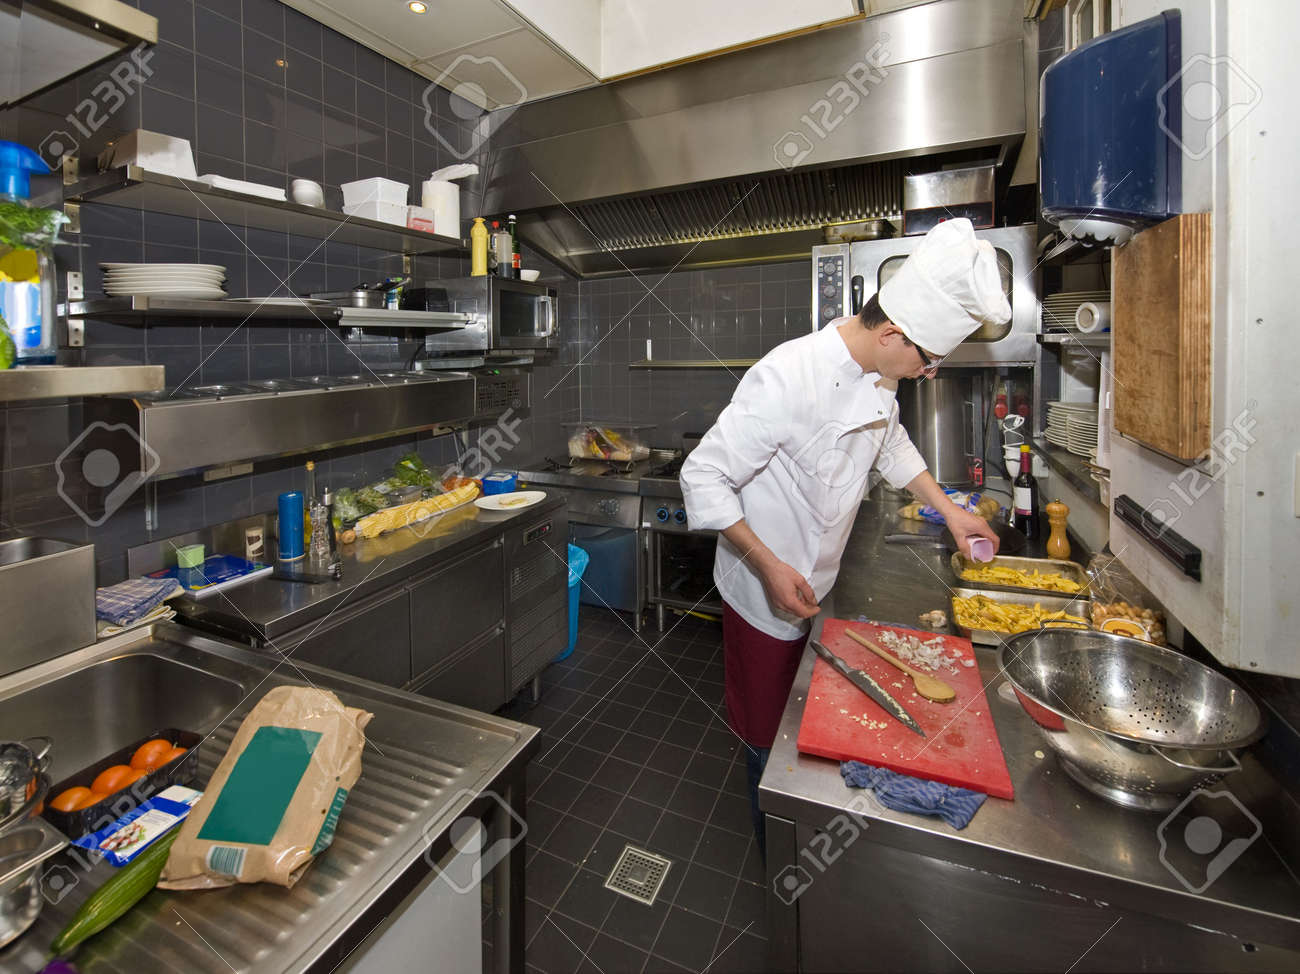 Chef Kitchen A Chef In A Profesional Kitchen Preparing Dinner Stock Photo